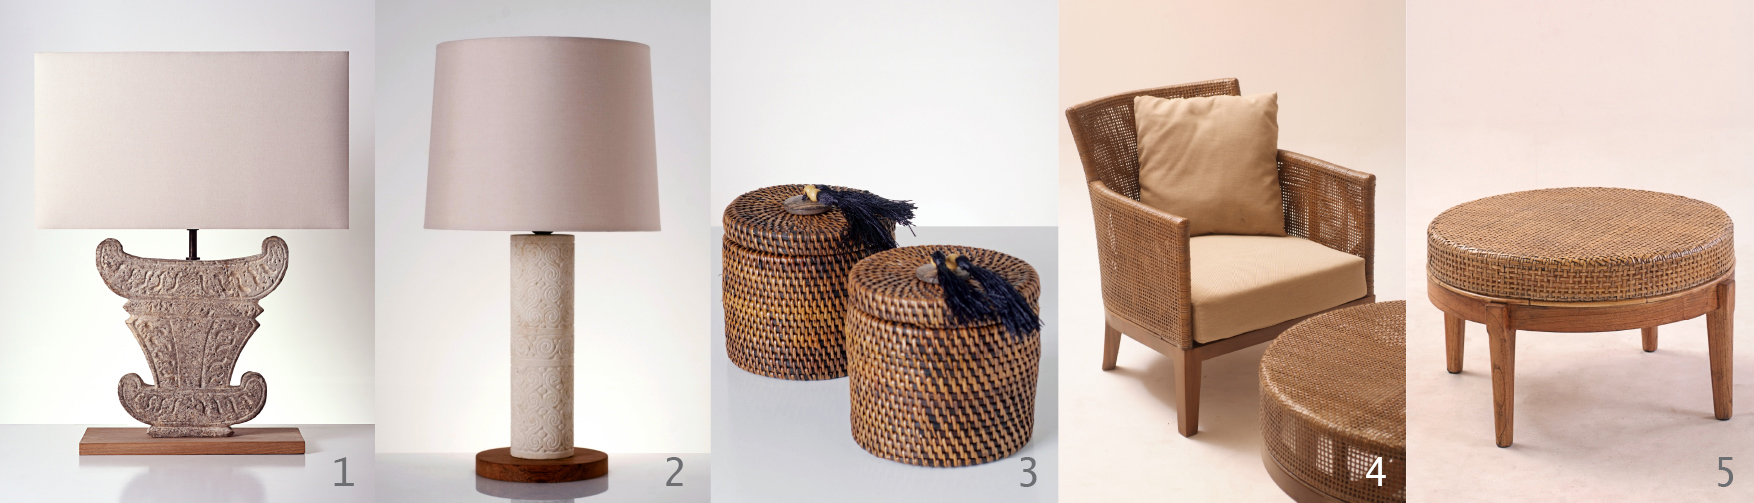 creta table lamp 2 dili stone table lamp 3 copole basket in dark. Black Bedroom Furniture Sets. Home Design Ideas